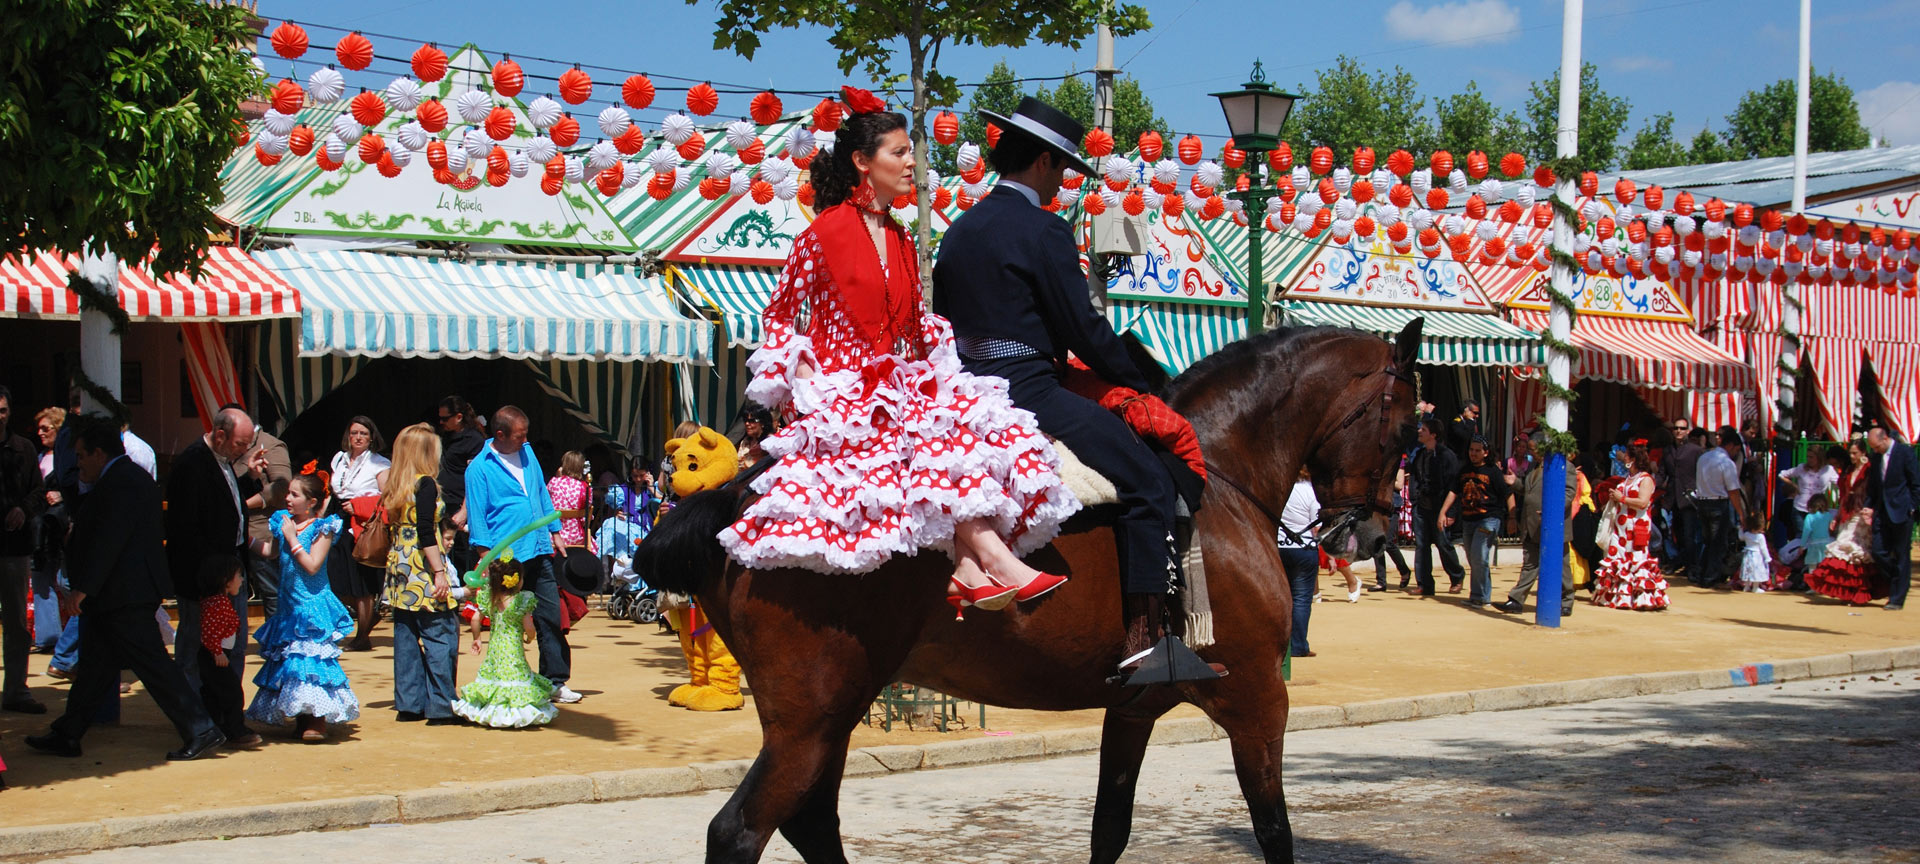 Feria de Abril. Feste a Seville | spain.info in italiano